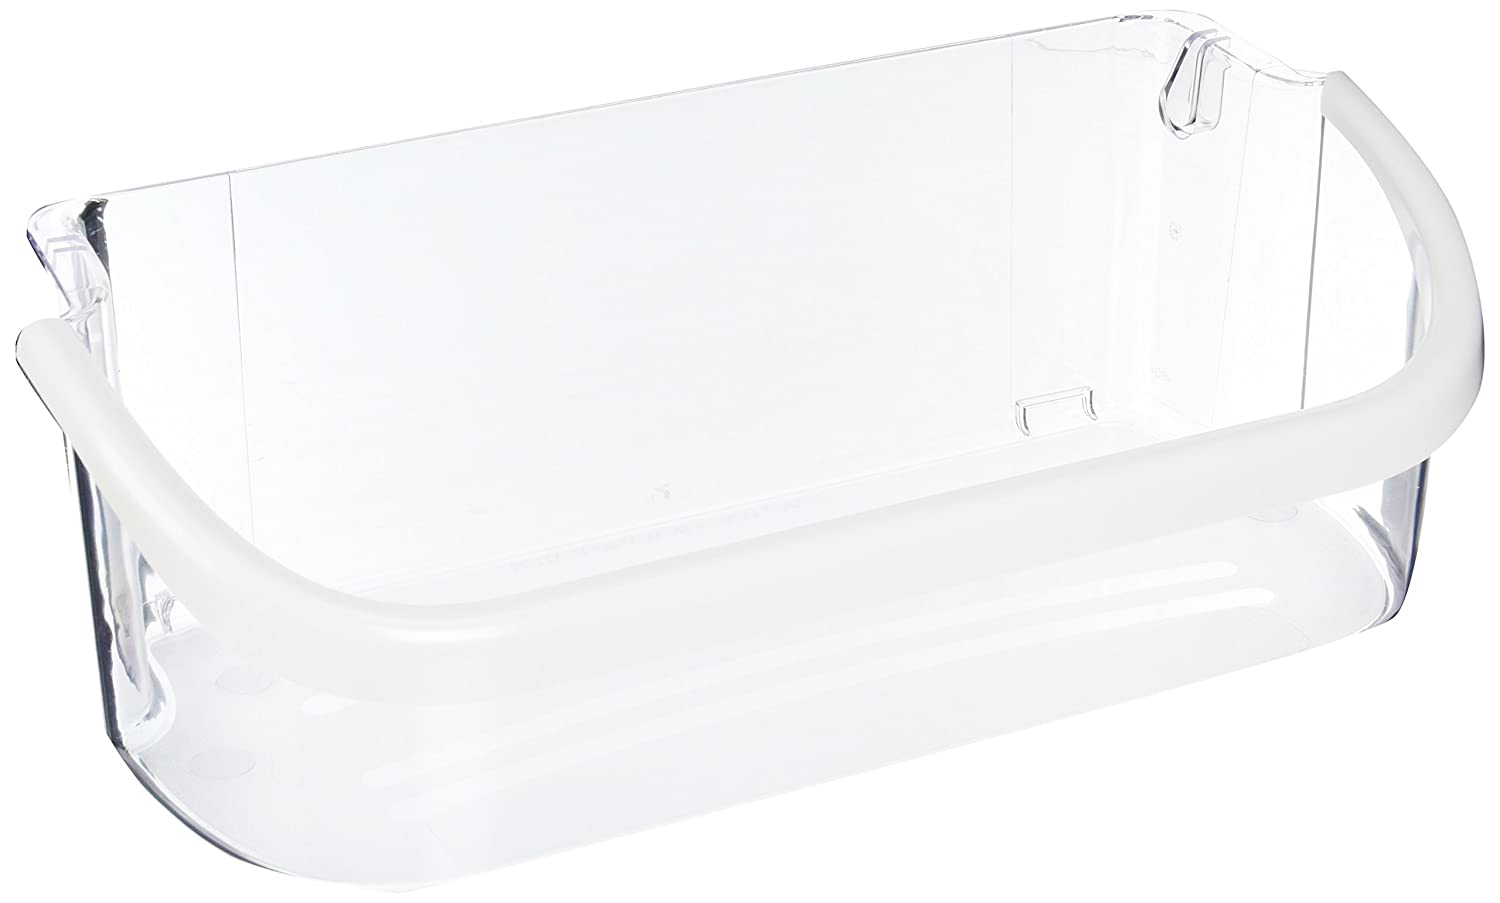 Frigidaire 241808205 Door Shelf Bin Refrigerator